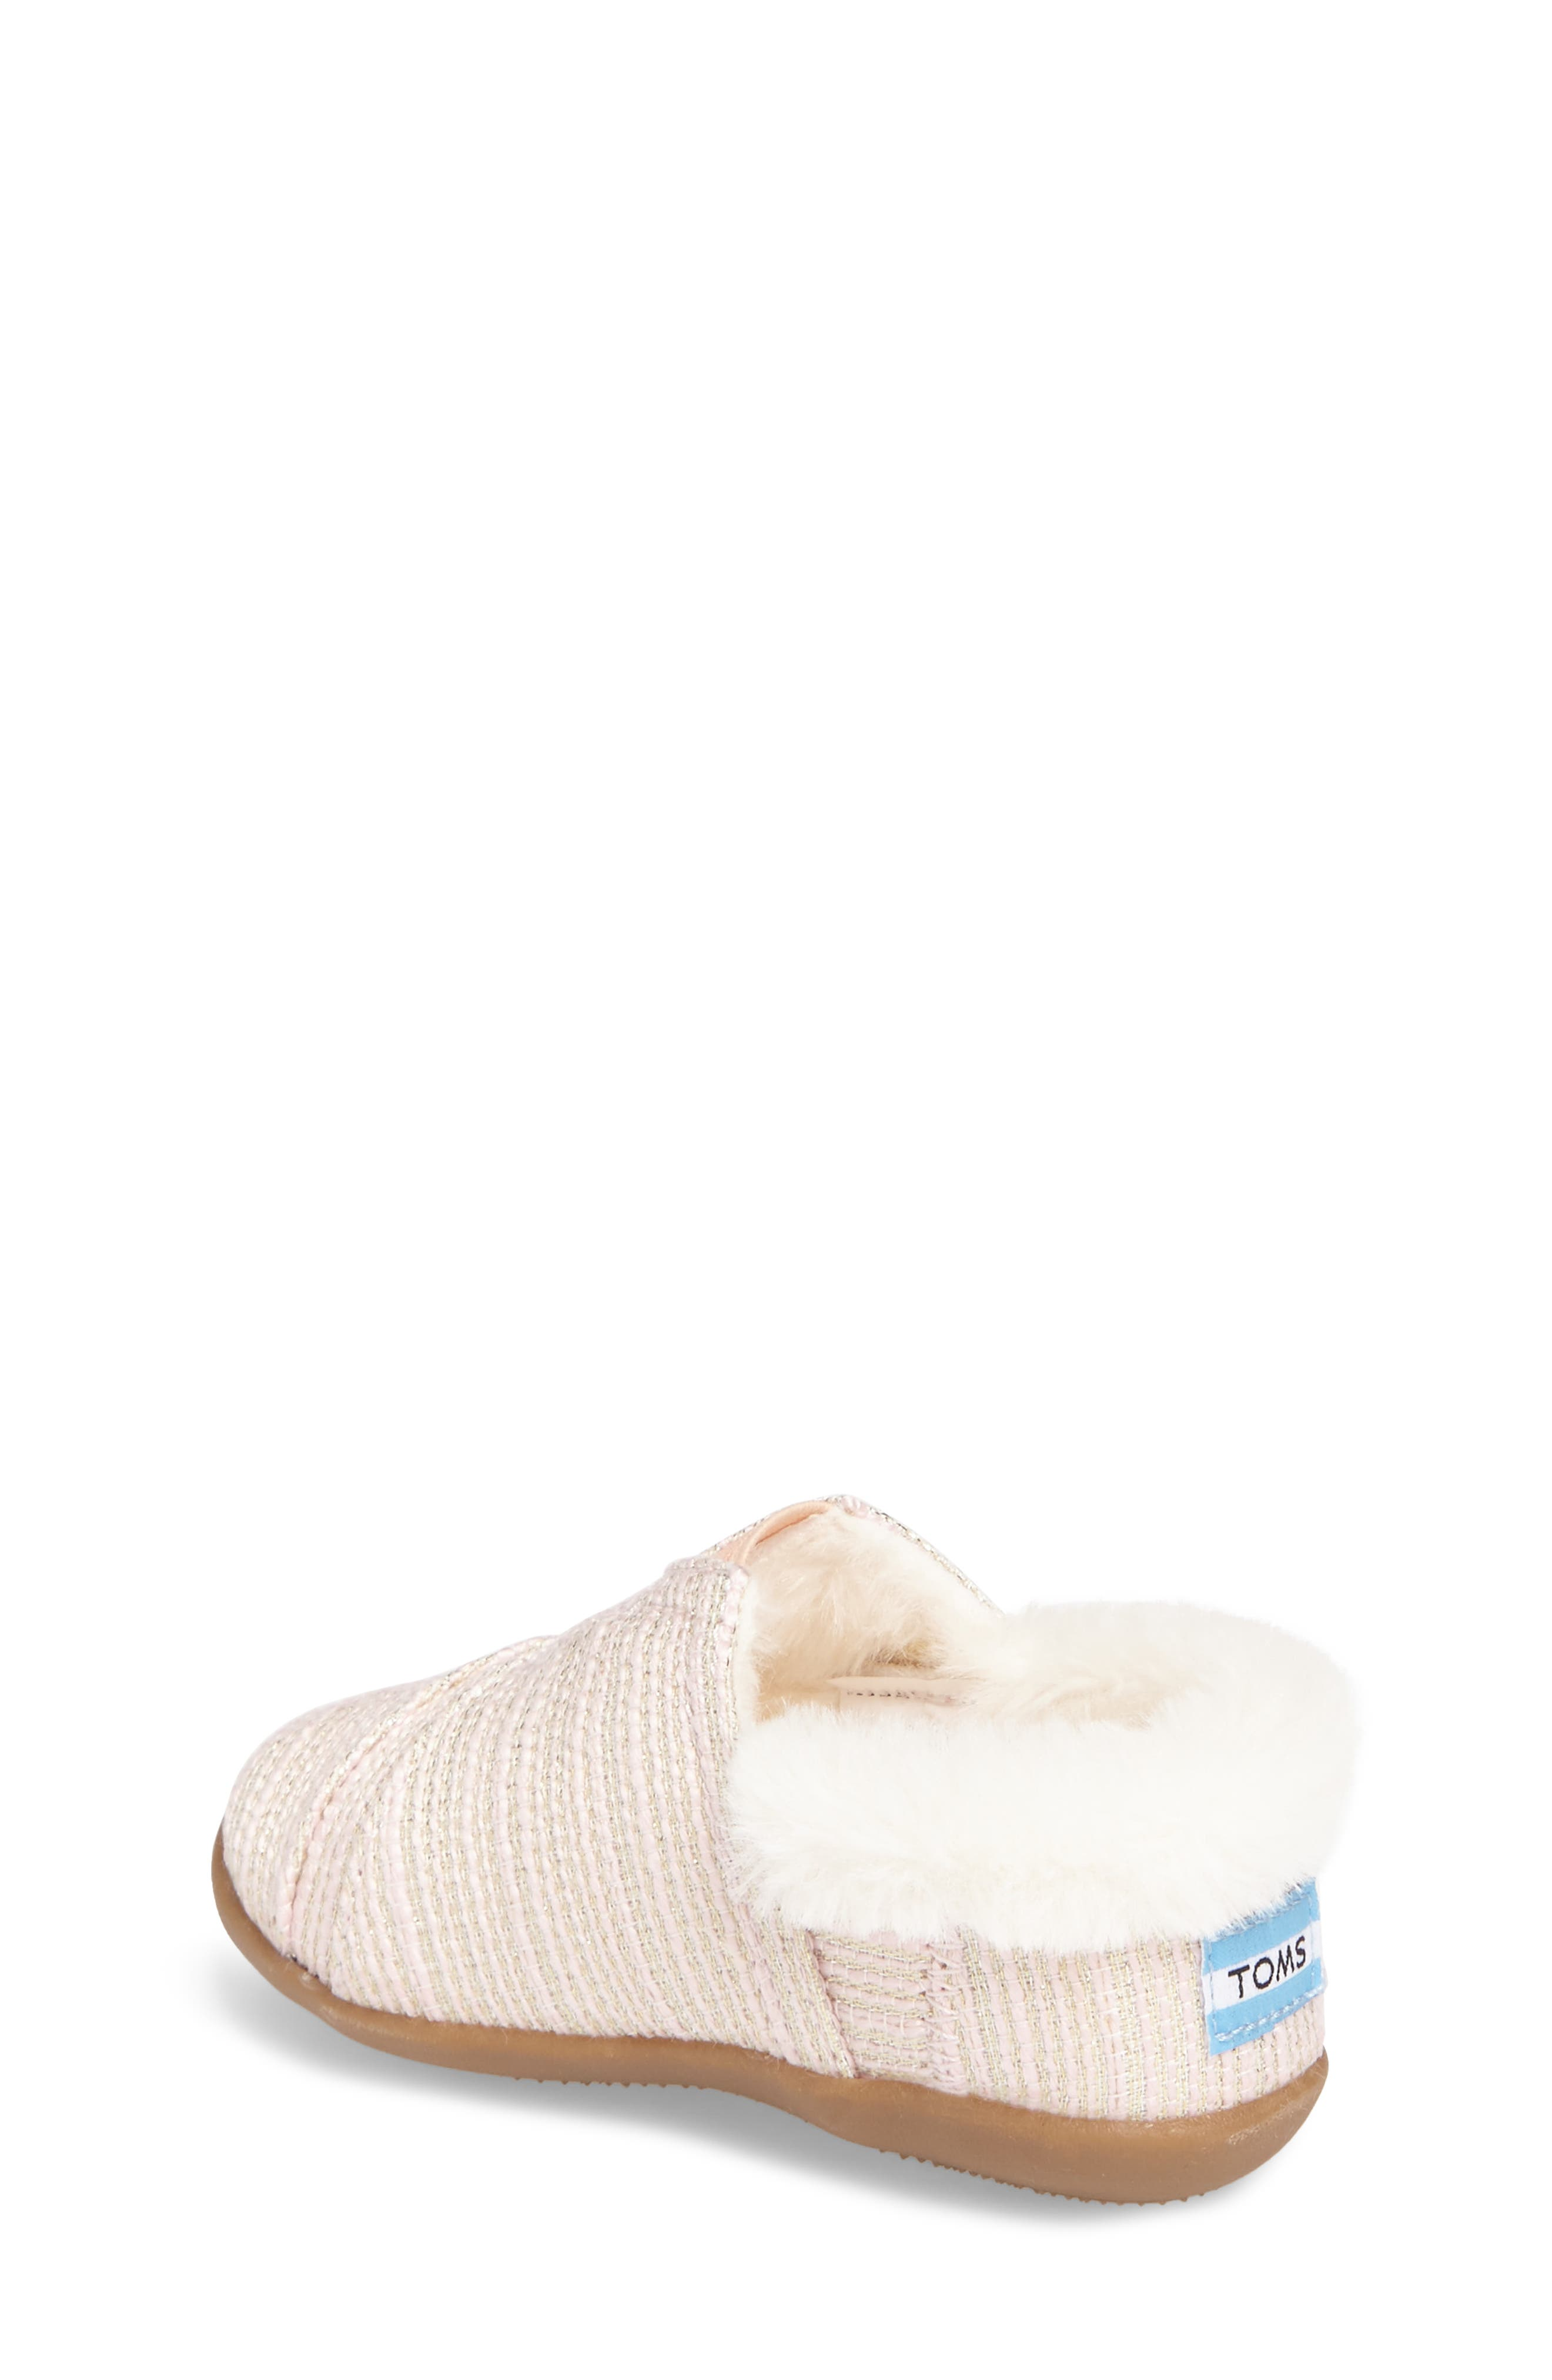 Alternate Image 2  - TOMS Tiny Faux Fur Metallic Slipper (Baby, Walker & Toddler)